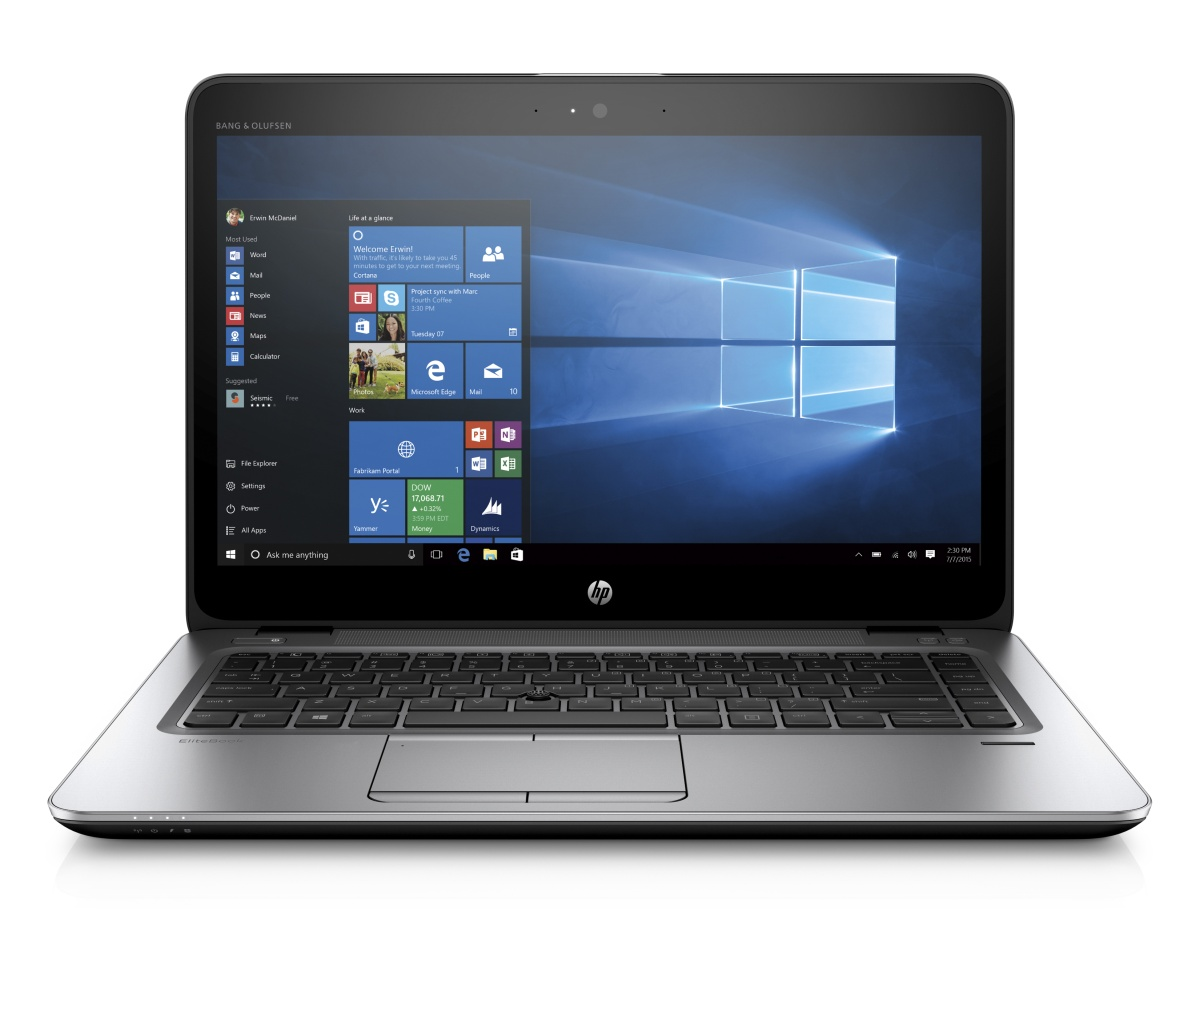 "HP EliteBook 840 G3 i5-6300U 14"" HD CAM, 4GB, 500GB, ac, BT, vPro, FpR, backlit keyb, 3C LL batt, Win 10 Pro downgraded"